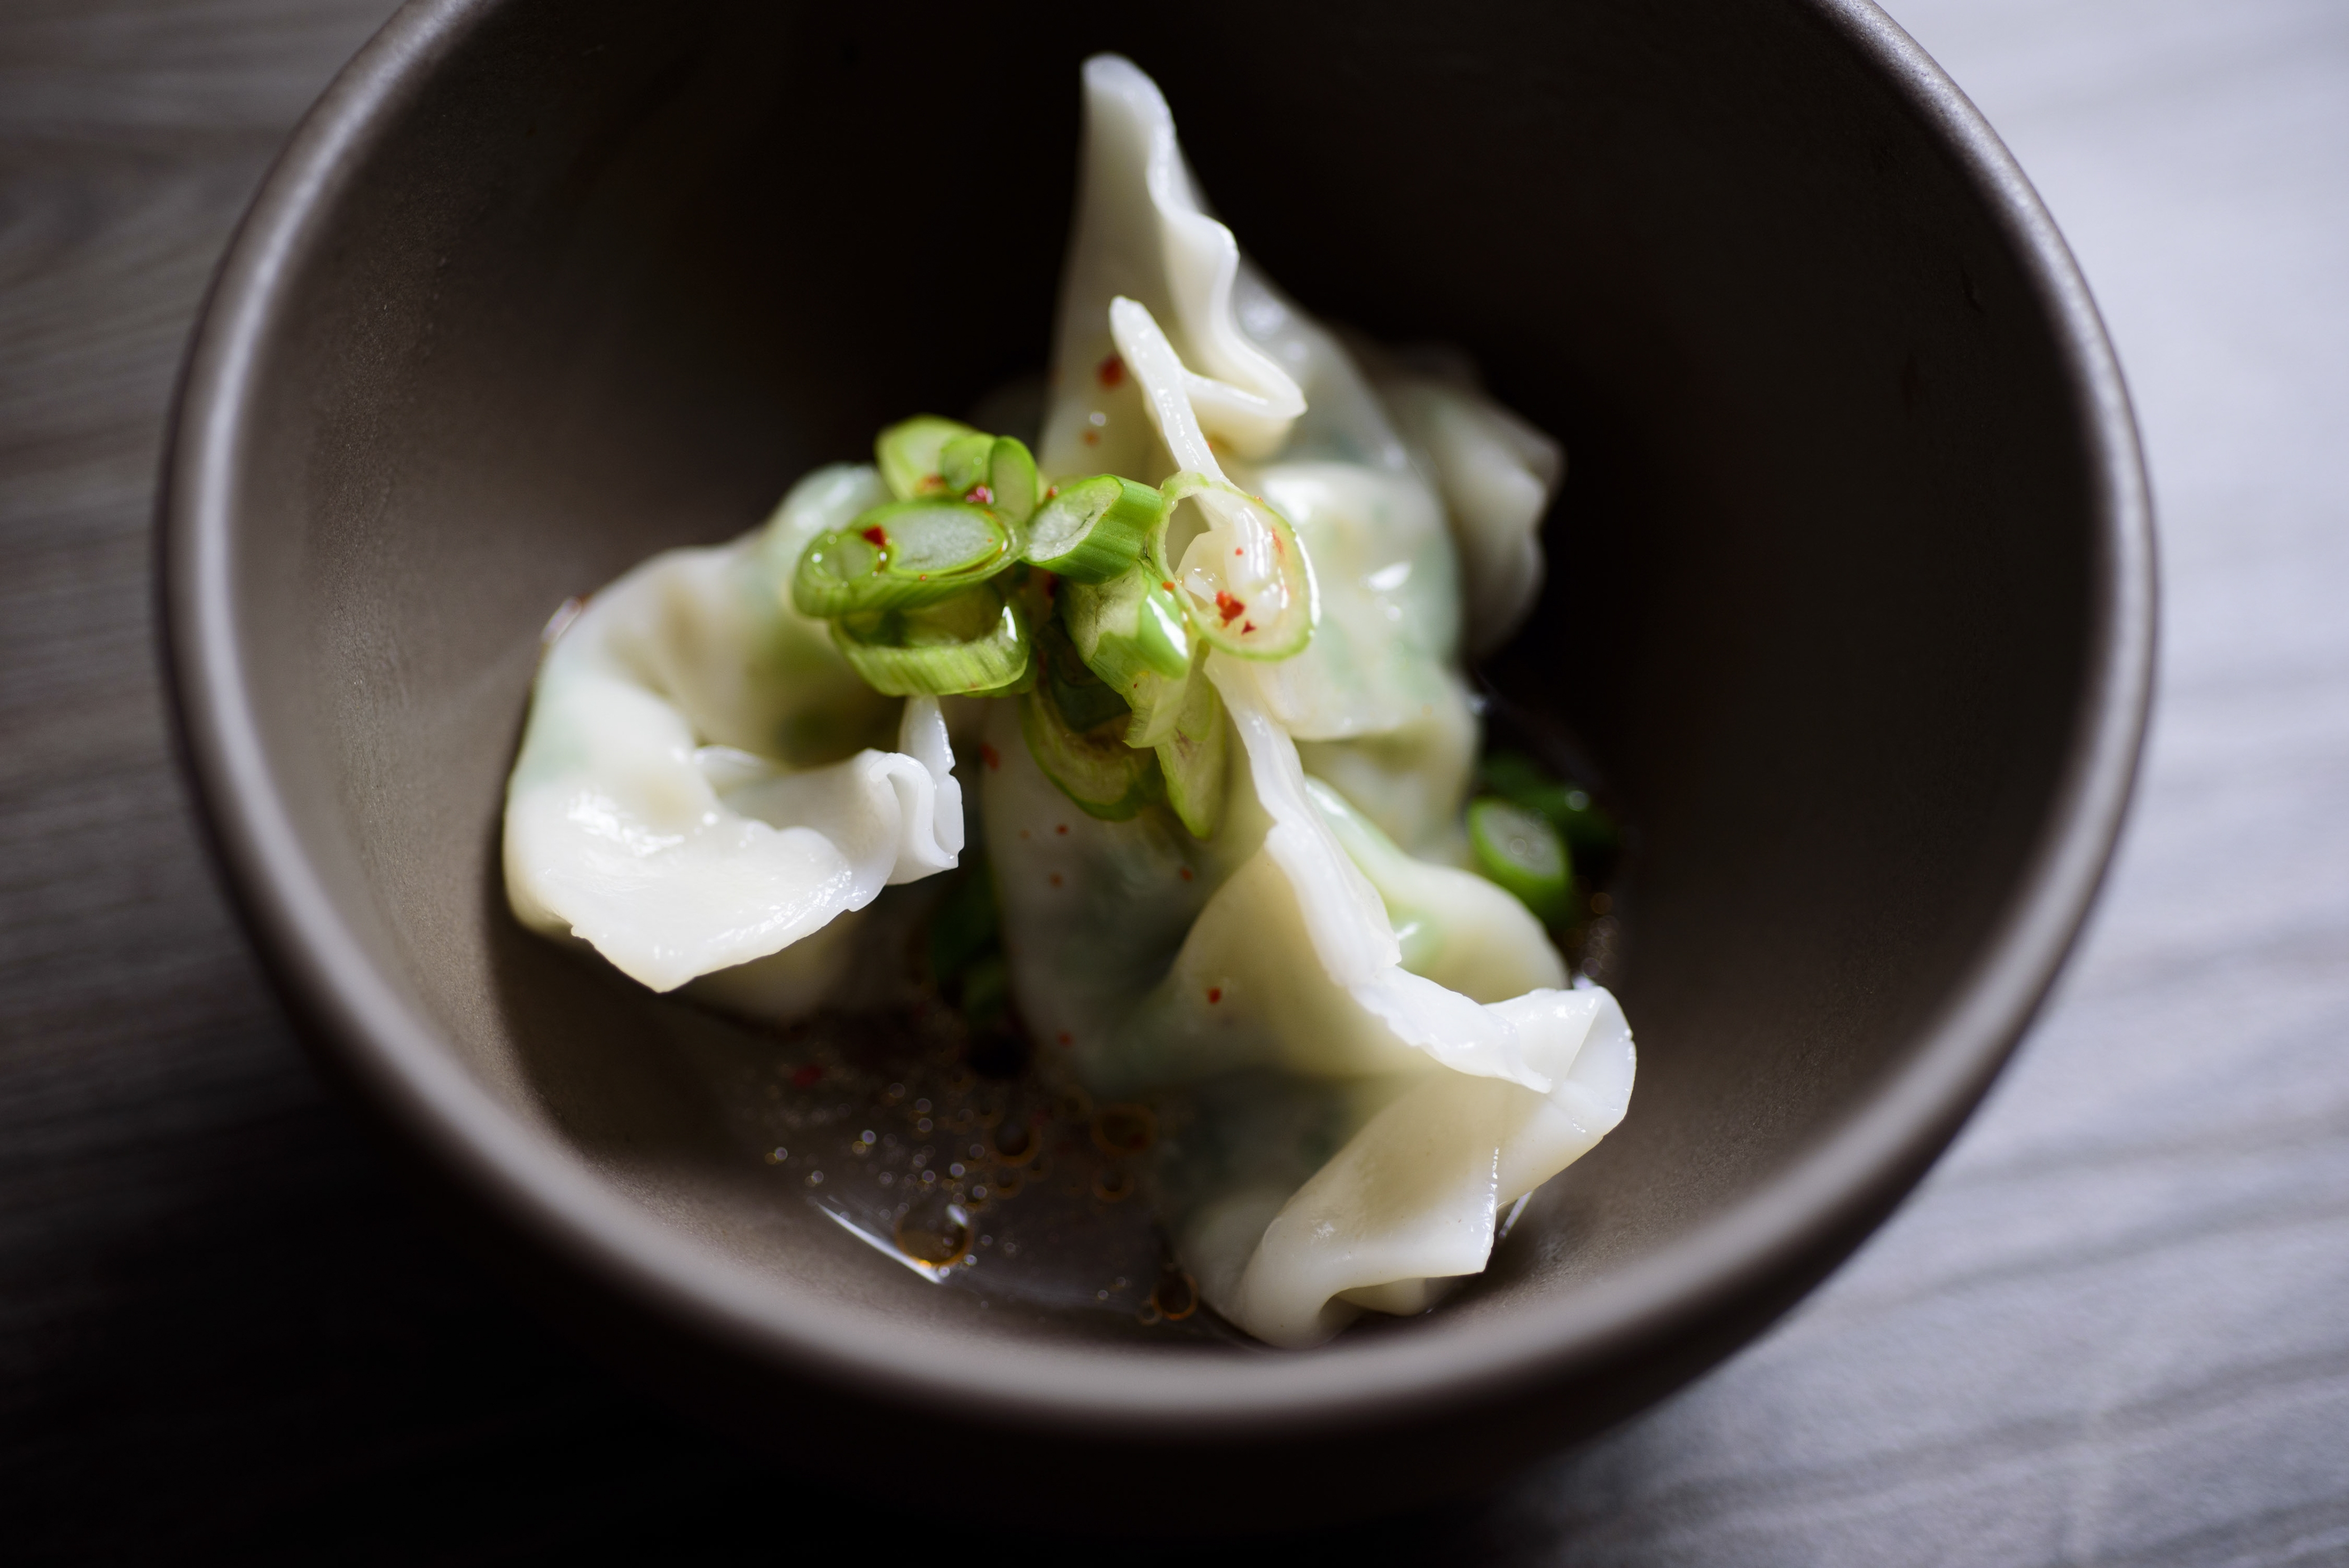 Shrimp and scallop dumplings are dressed with a sauce of spicy sesame oil, rice wine vinegar and slivered scallions.